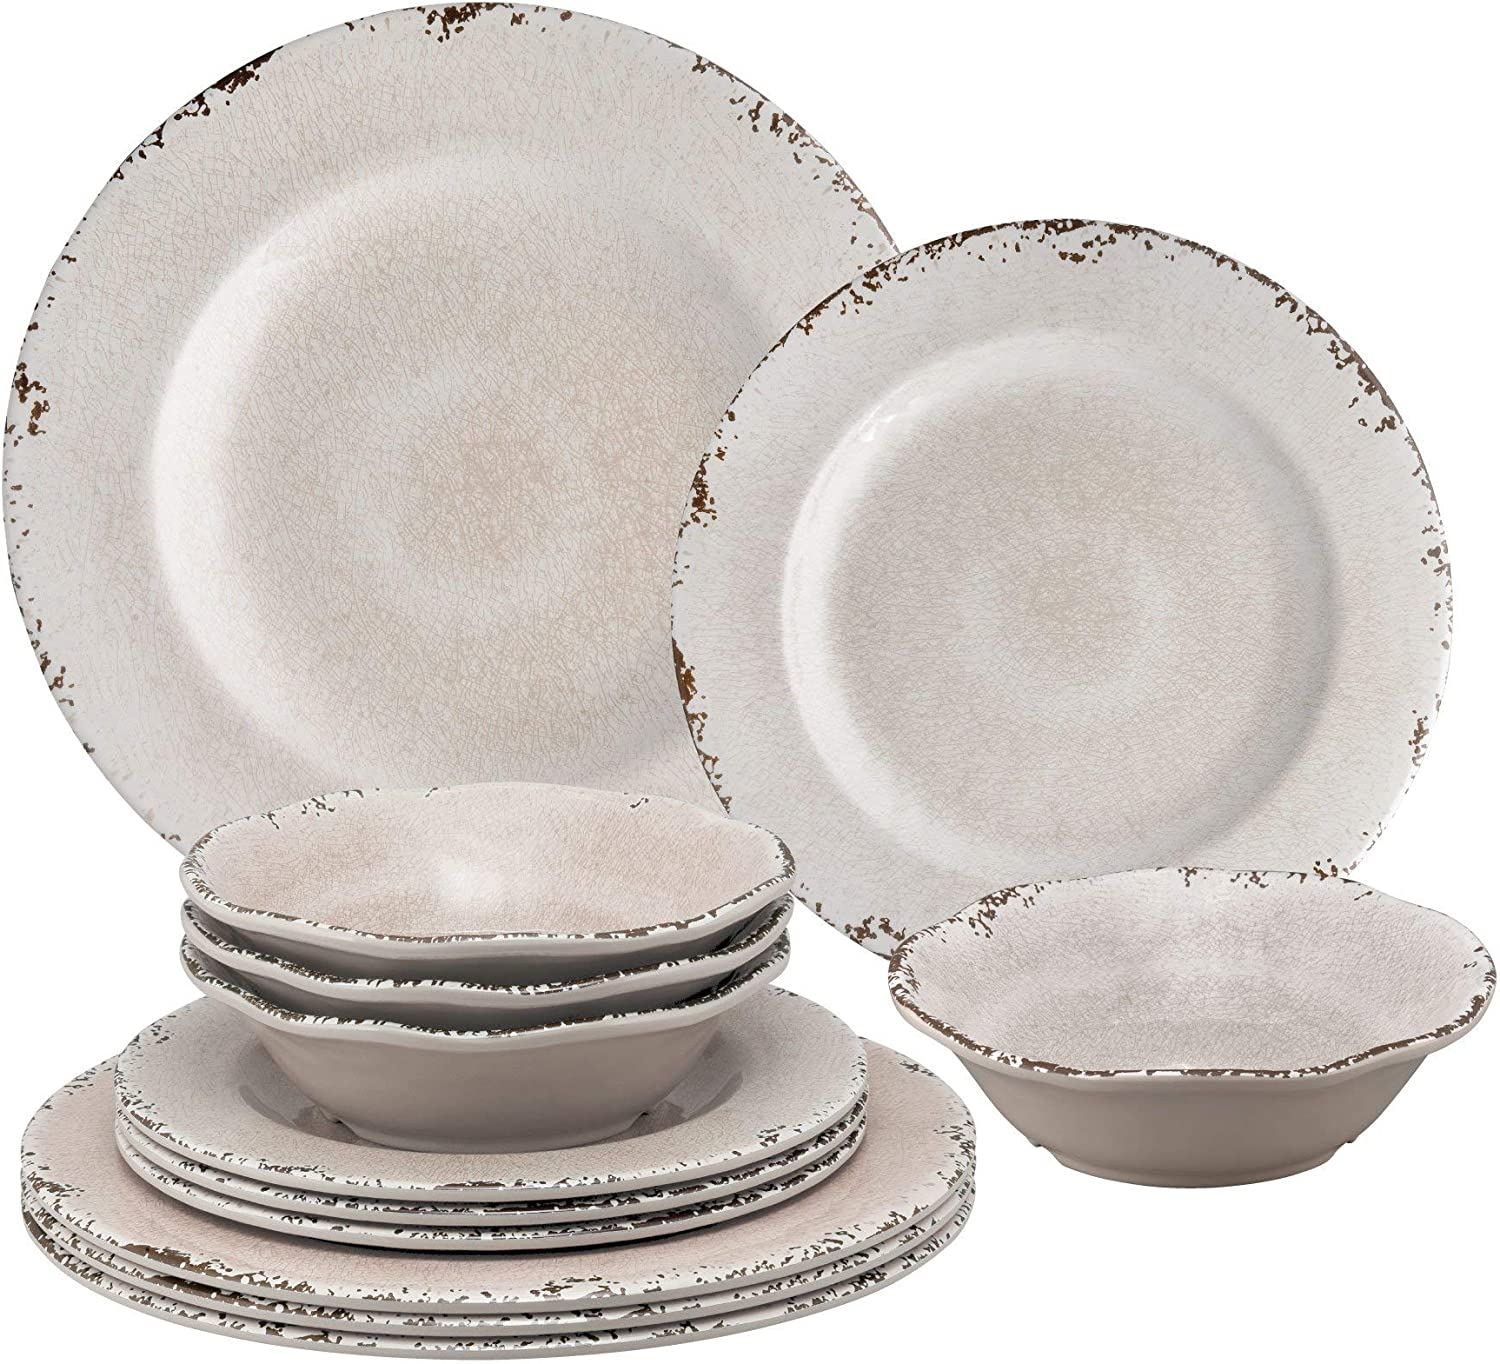 Gourmet Art 8-Piece Crackle Heavyweight and Durable Melamine Dinnerware  Set, Cream, Service for 8. Includes Dinner Plates, Salad Plates and Bowls.